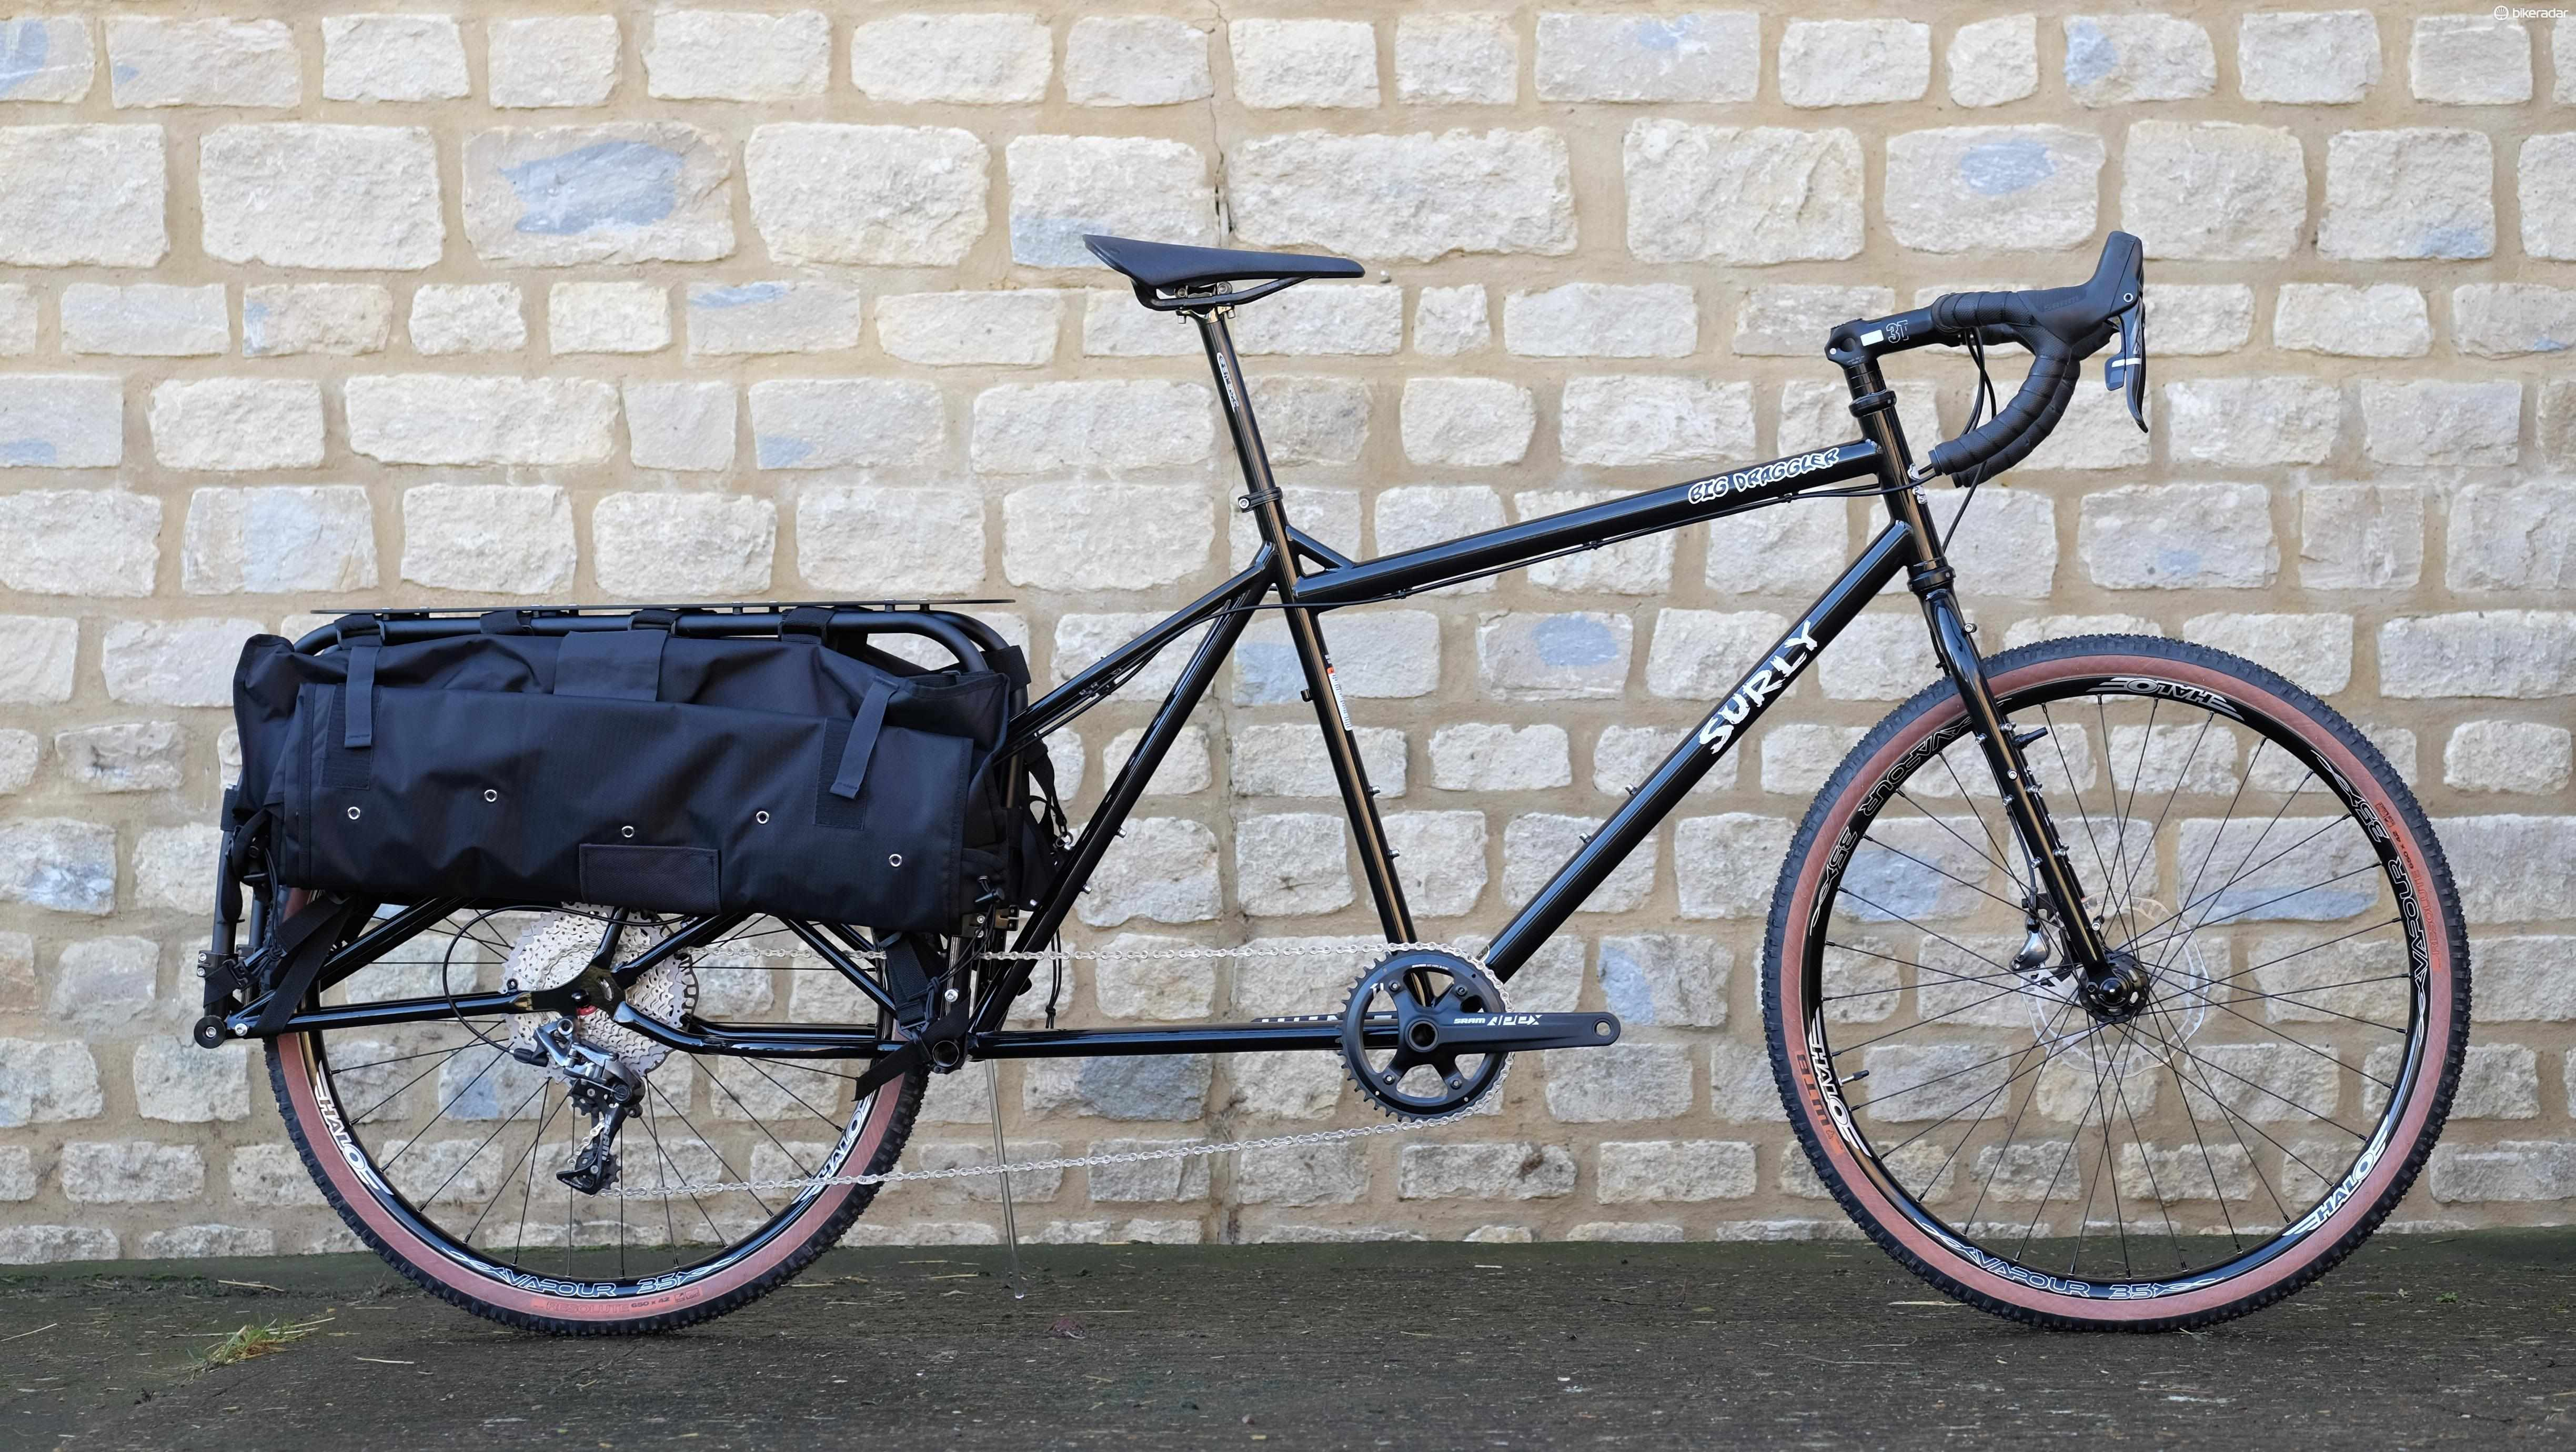 Surly's Big Draggler is a long-wheelbase hauler for those who might want to get their head down